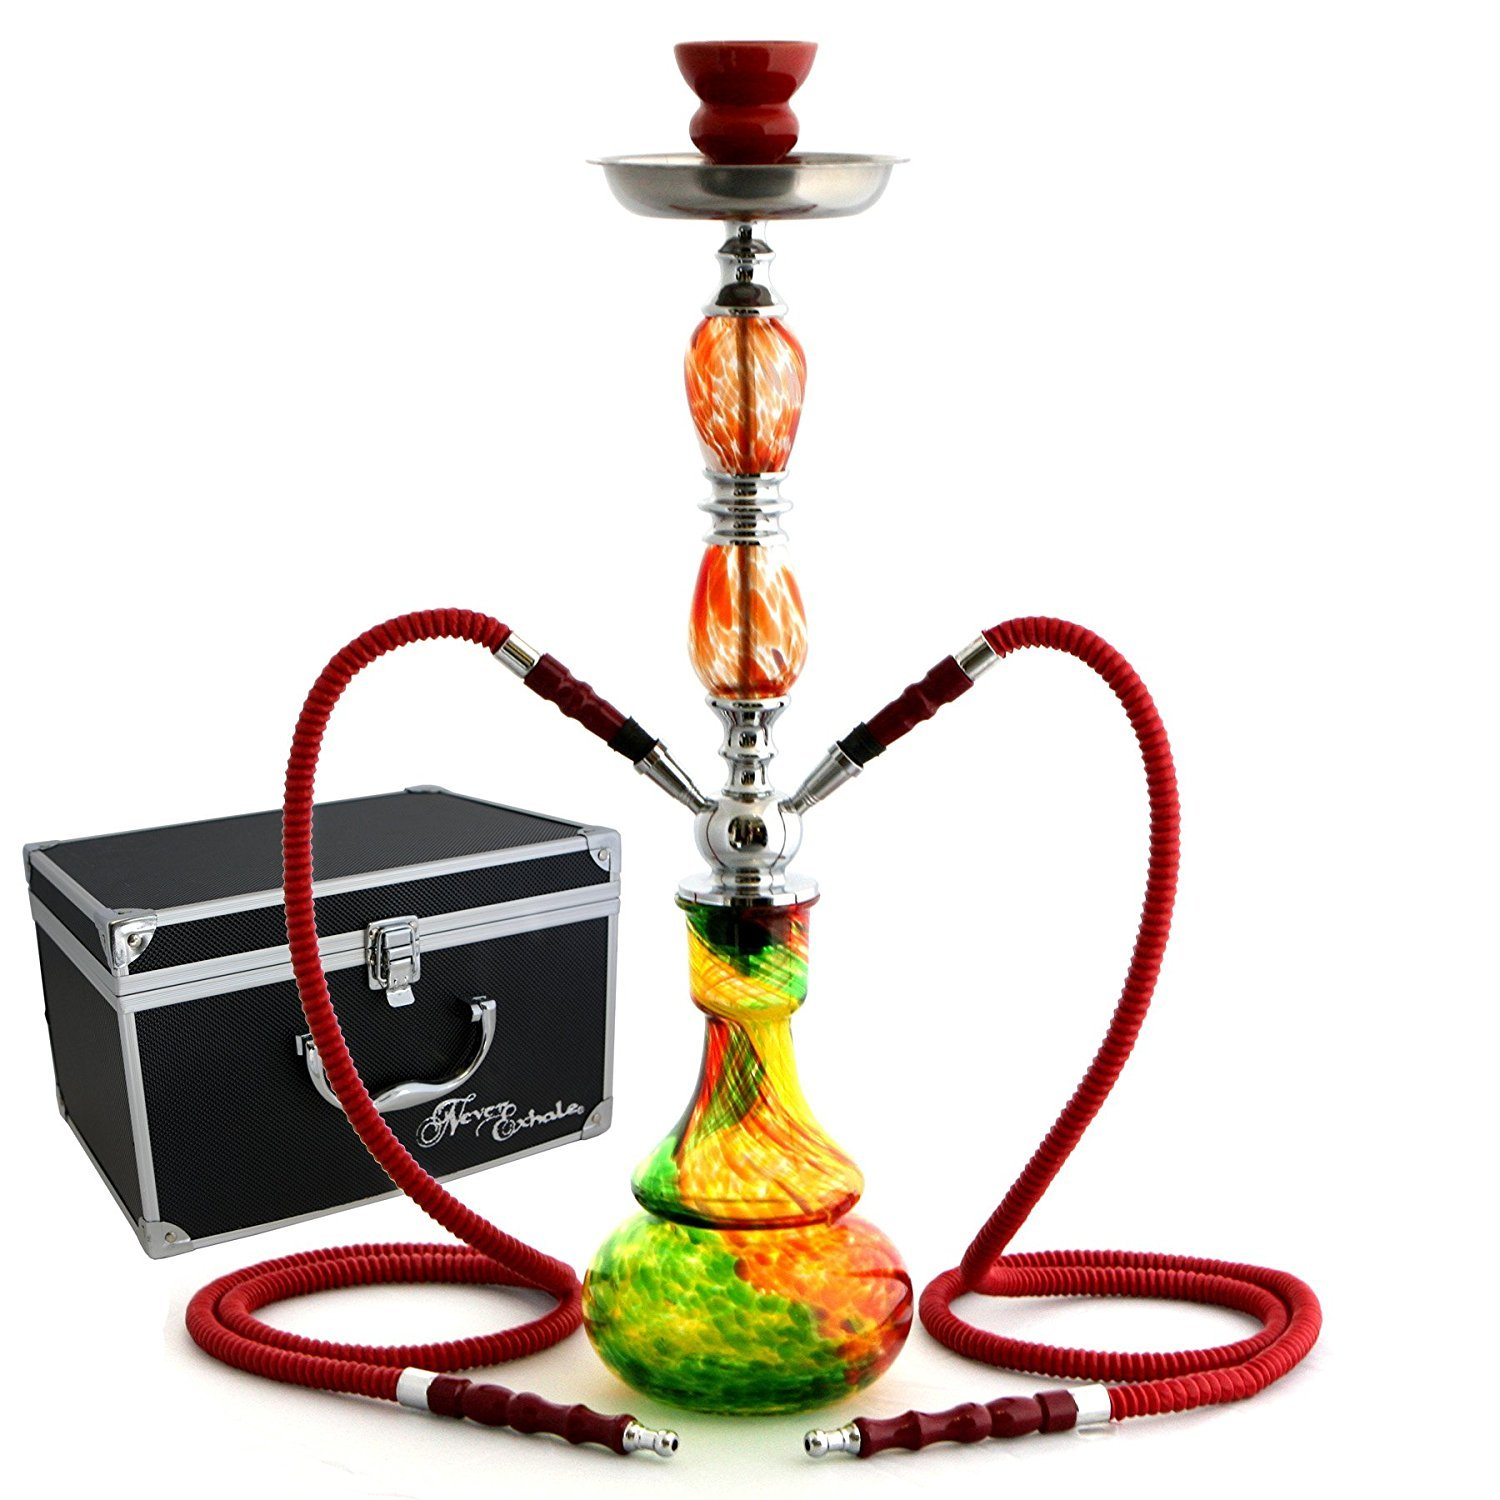 GSTAR 22'' 2 Hose Hookah Complete Set with Optional Carrying Case - Swirl Glass Vase - (Rasta Red w/ Case)